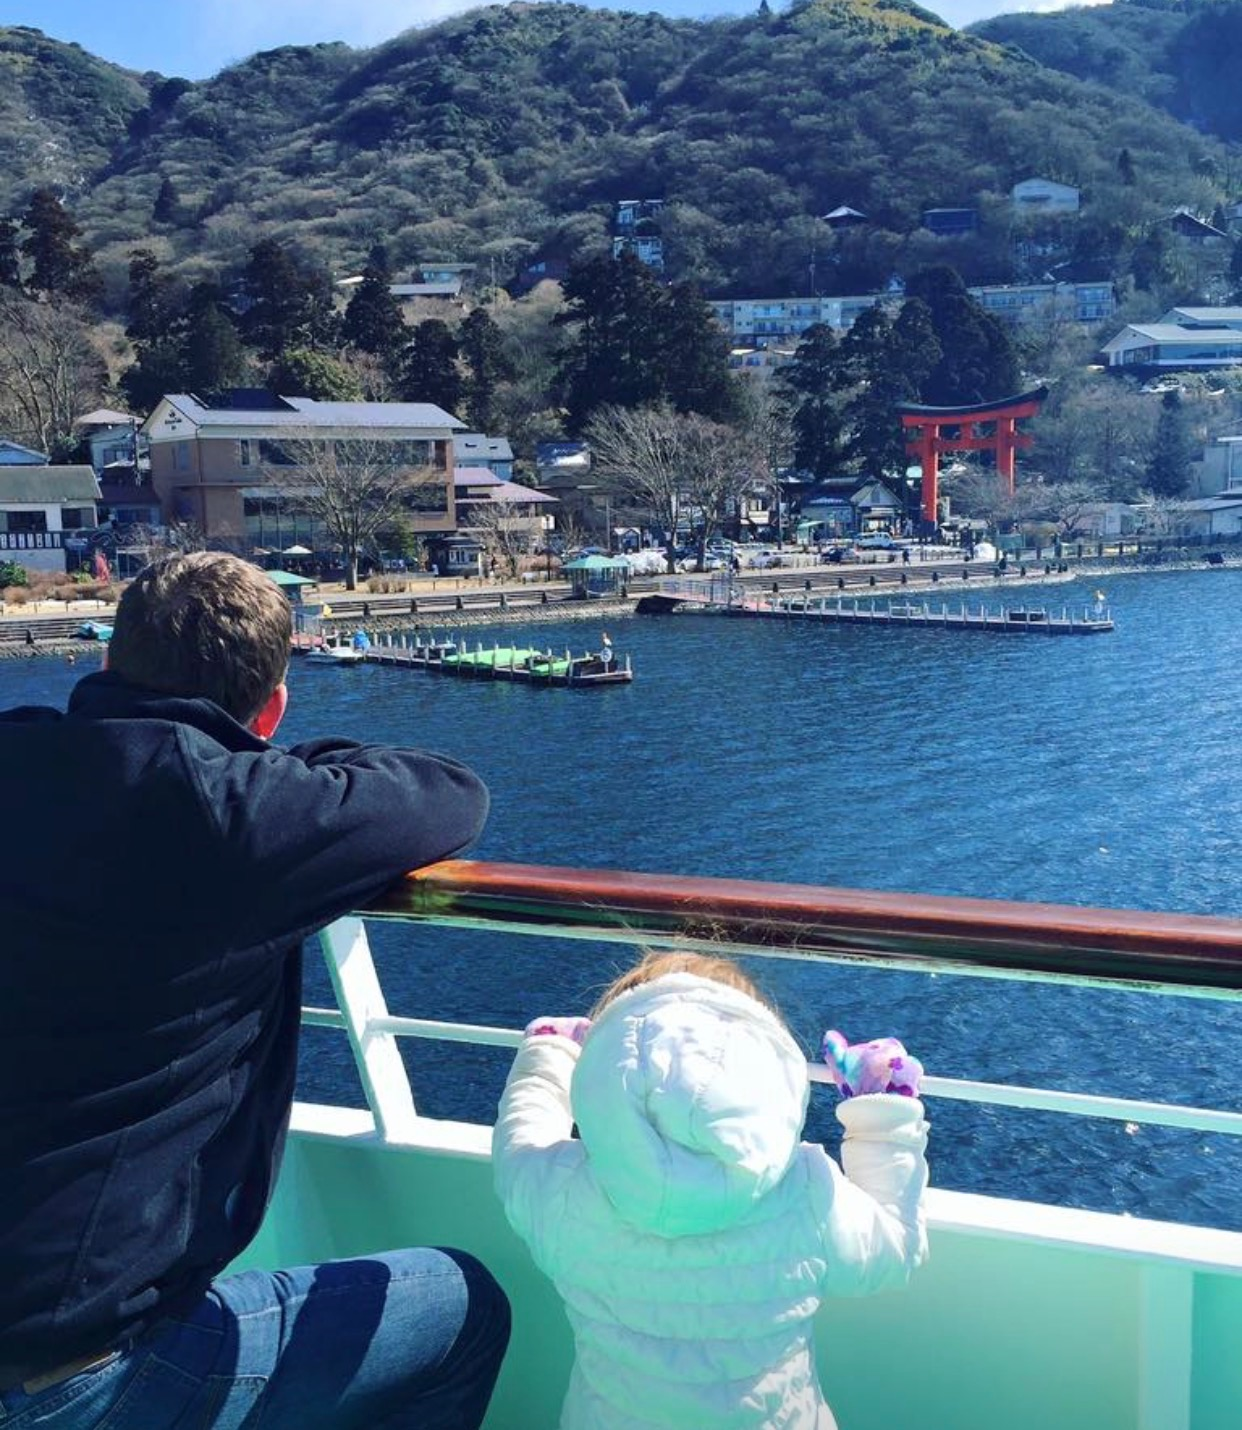 Mt Fuji Views That Are Still Fun For Kids The Tokyo Chapter Mount Shizuoka Tourist Pass Mini 3 Days Once Youre At Hakone En There Some Touristy Shops And An Aquarium Its A Bit Run Down So I Dont Recommend Eating Lunch On This Side Of Lake If